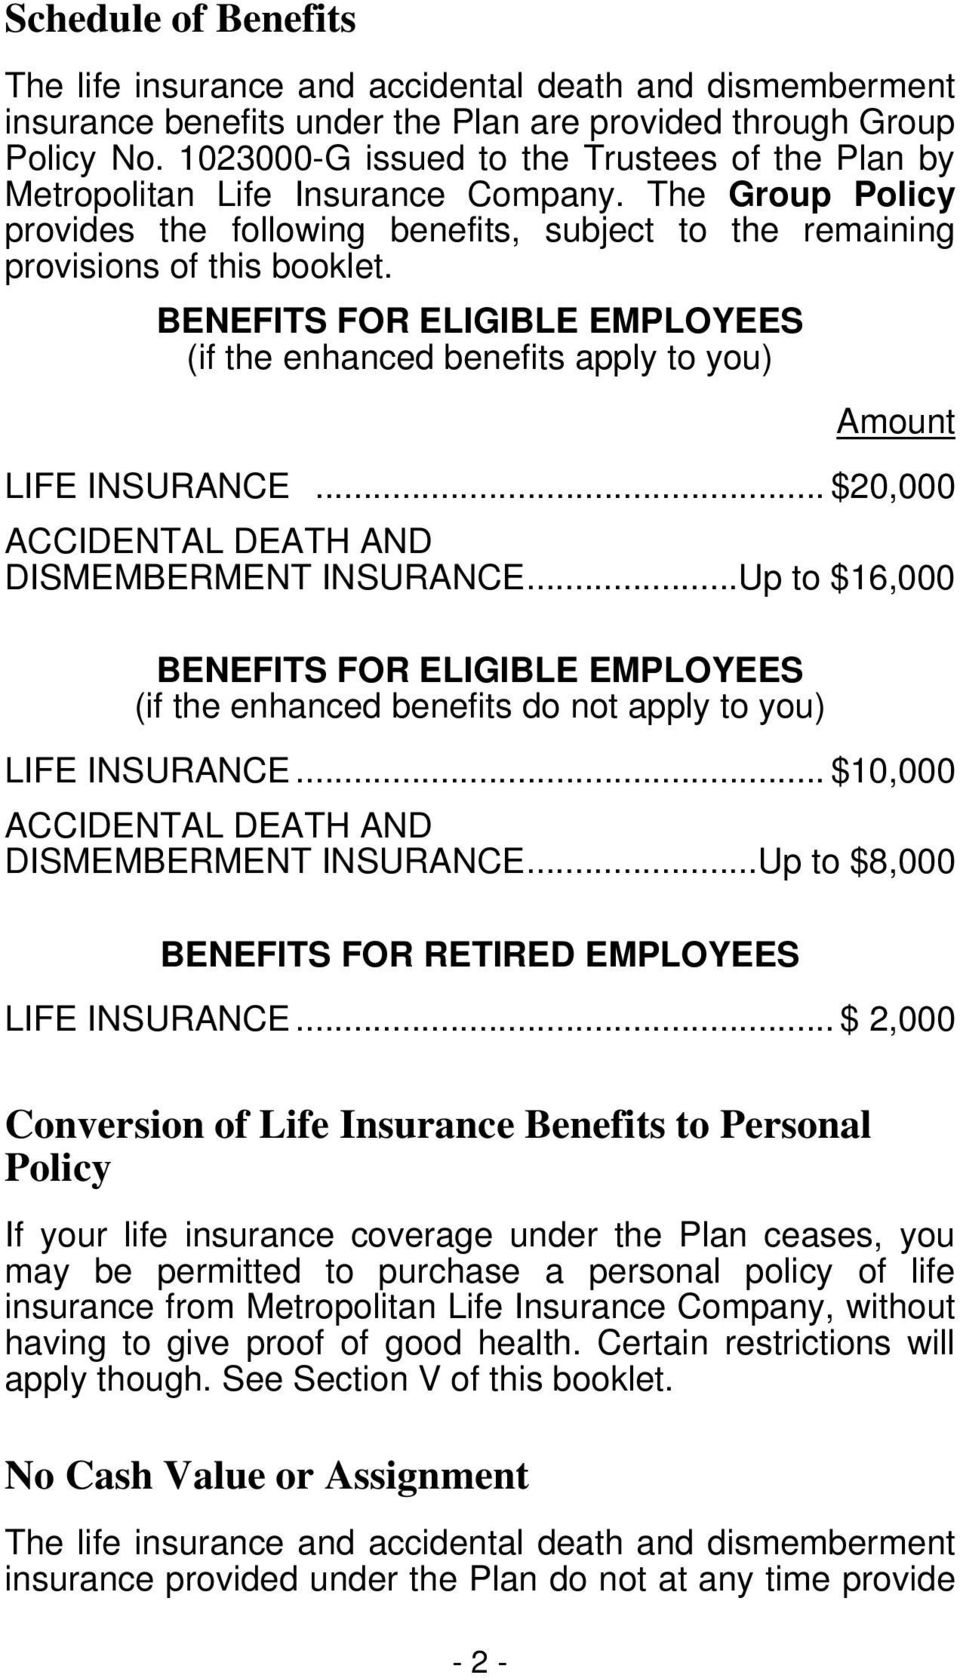 BENEFITS FOR ELIGIBLE EMPLOYEES (if the enhanced benefits apply to you) Amount LIFE INSURANCE... $20,000 ACCIDENTAL DEATH AND DISMEMBERMENT INSURANCE.